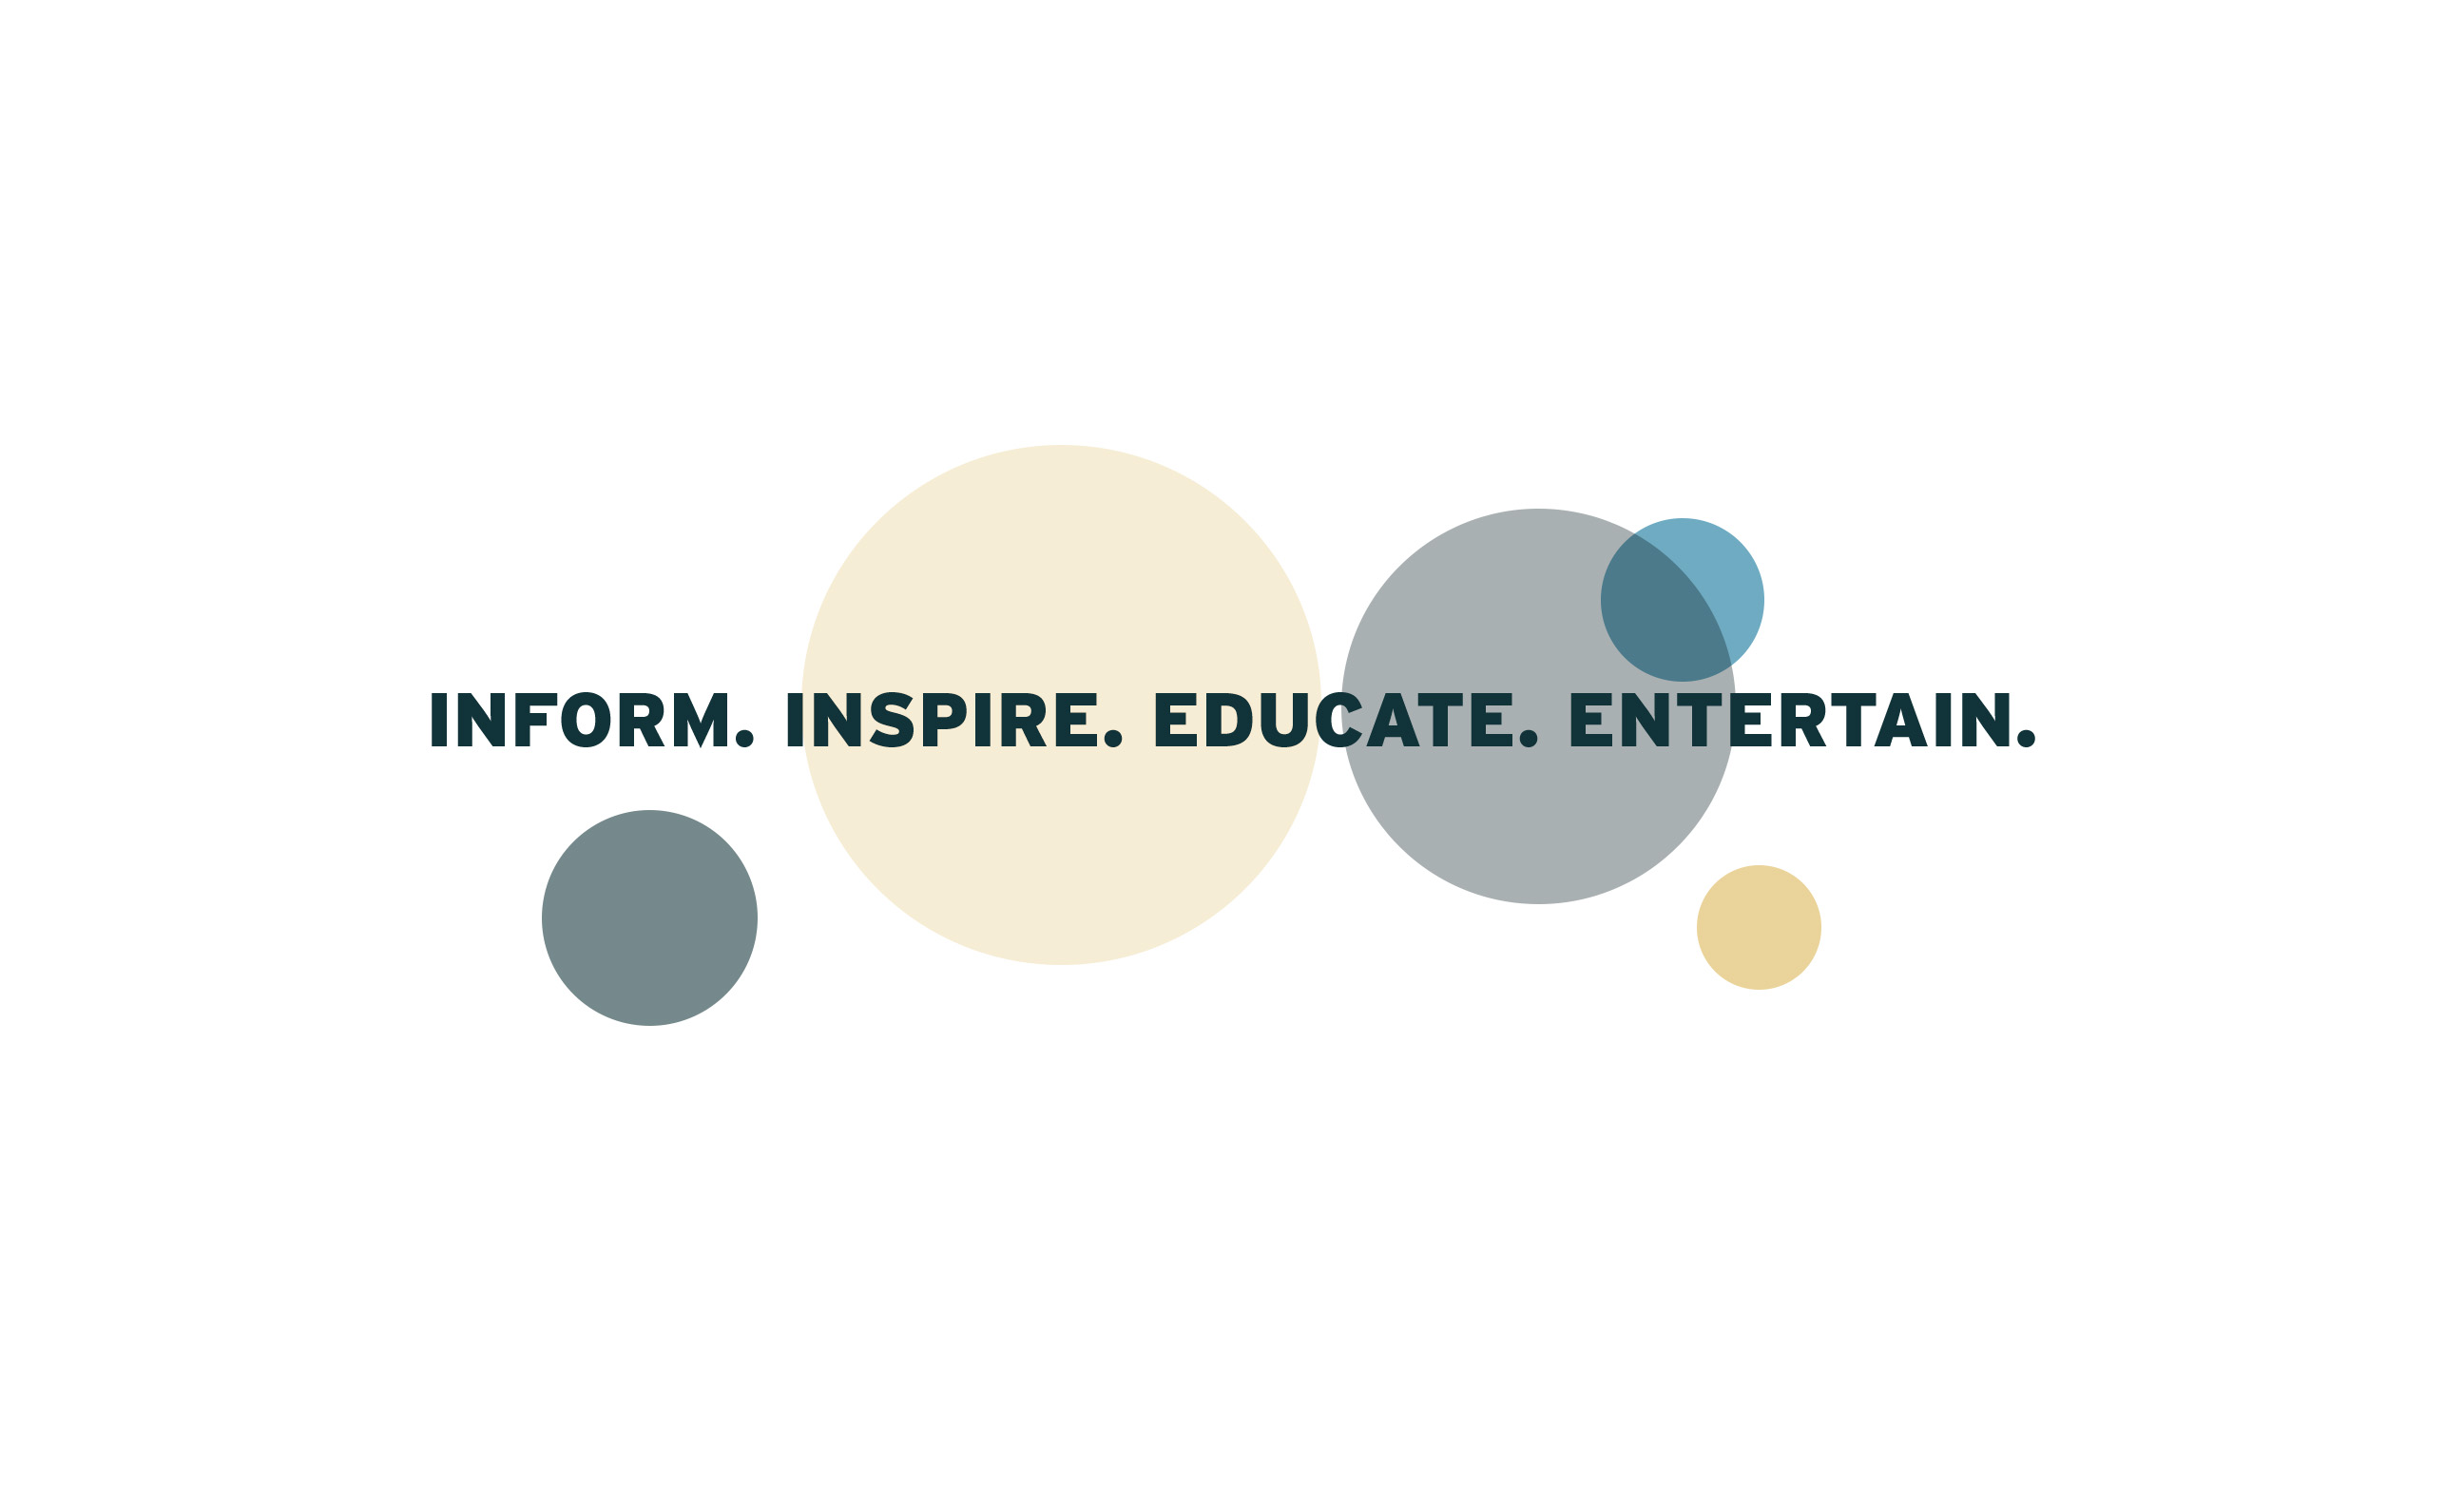 Inform. Inspire. Educate. Entertain.